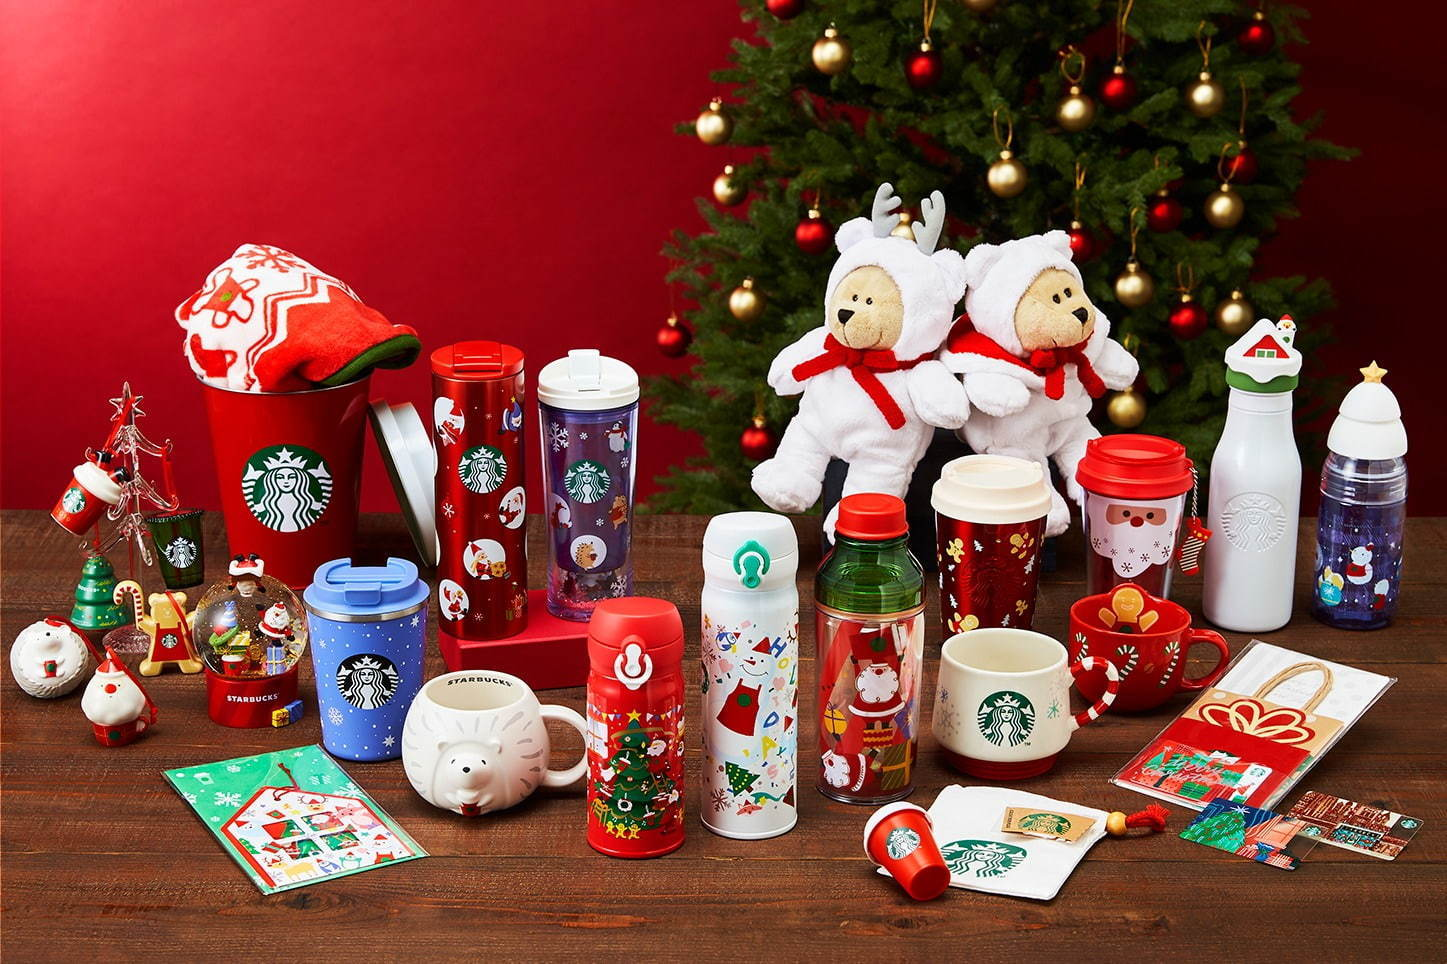 Starbucks Japan Christmas Tumbler And Mug 2019 Japan Web Magazine